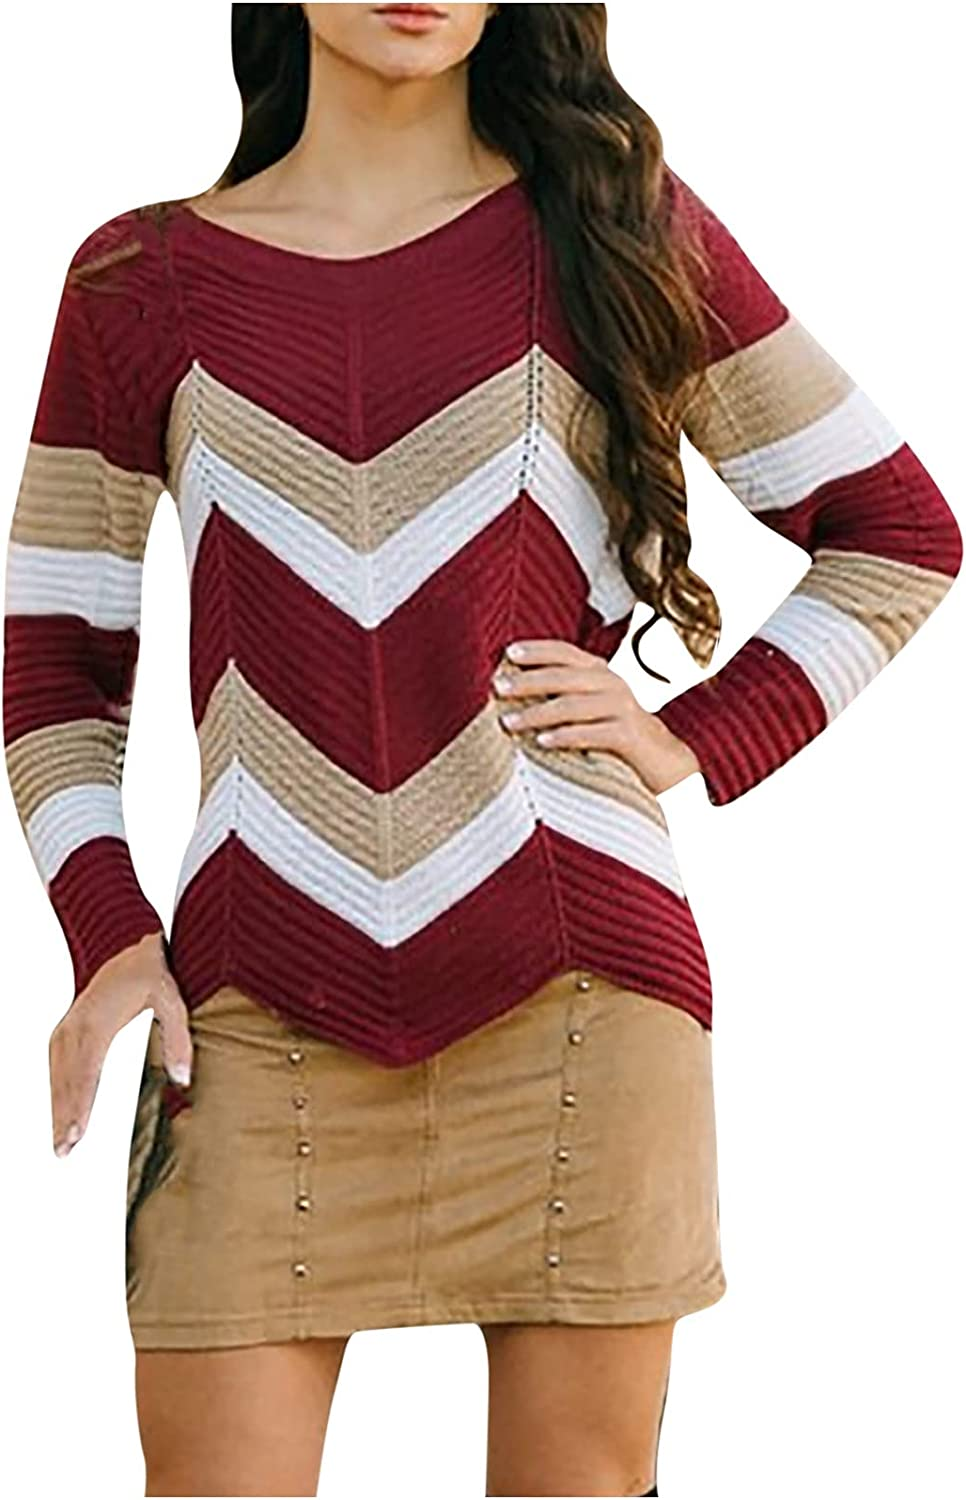 Women's Lightweight Pullover Sweater Long Sleeve Warm Crew Neck Casual Knit Oversized Loose Wave Color Block Tops